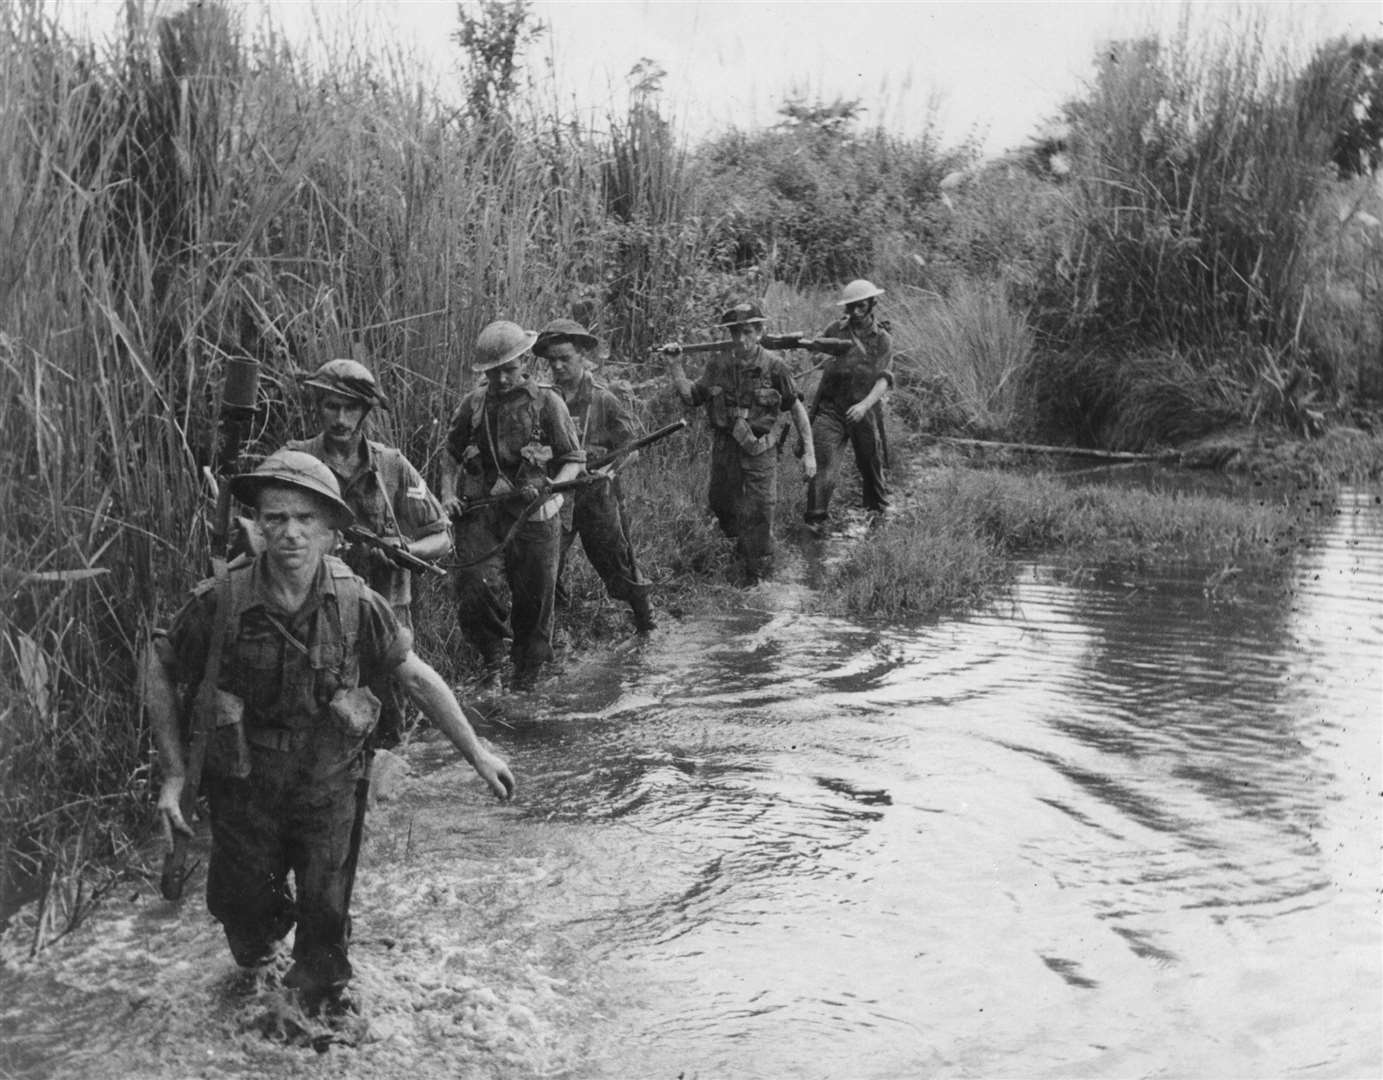 A patrol from 2nd Battalion, The Suffolk Regiment in the Arakan peninsular of Burma in 1943. Picture courtesy of the Suffolk Regiment Museum.